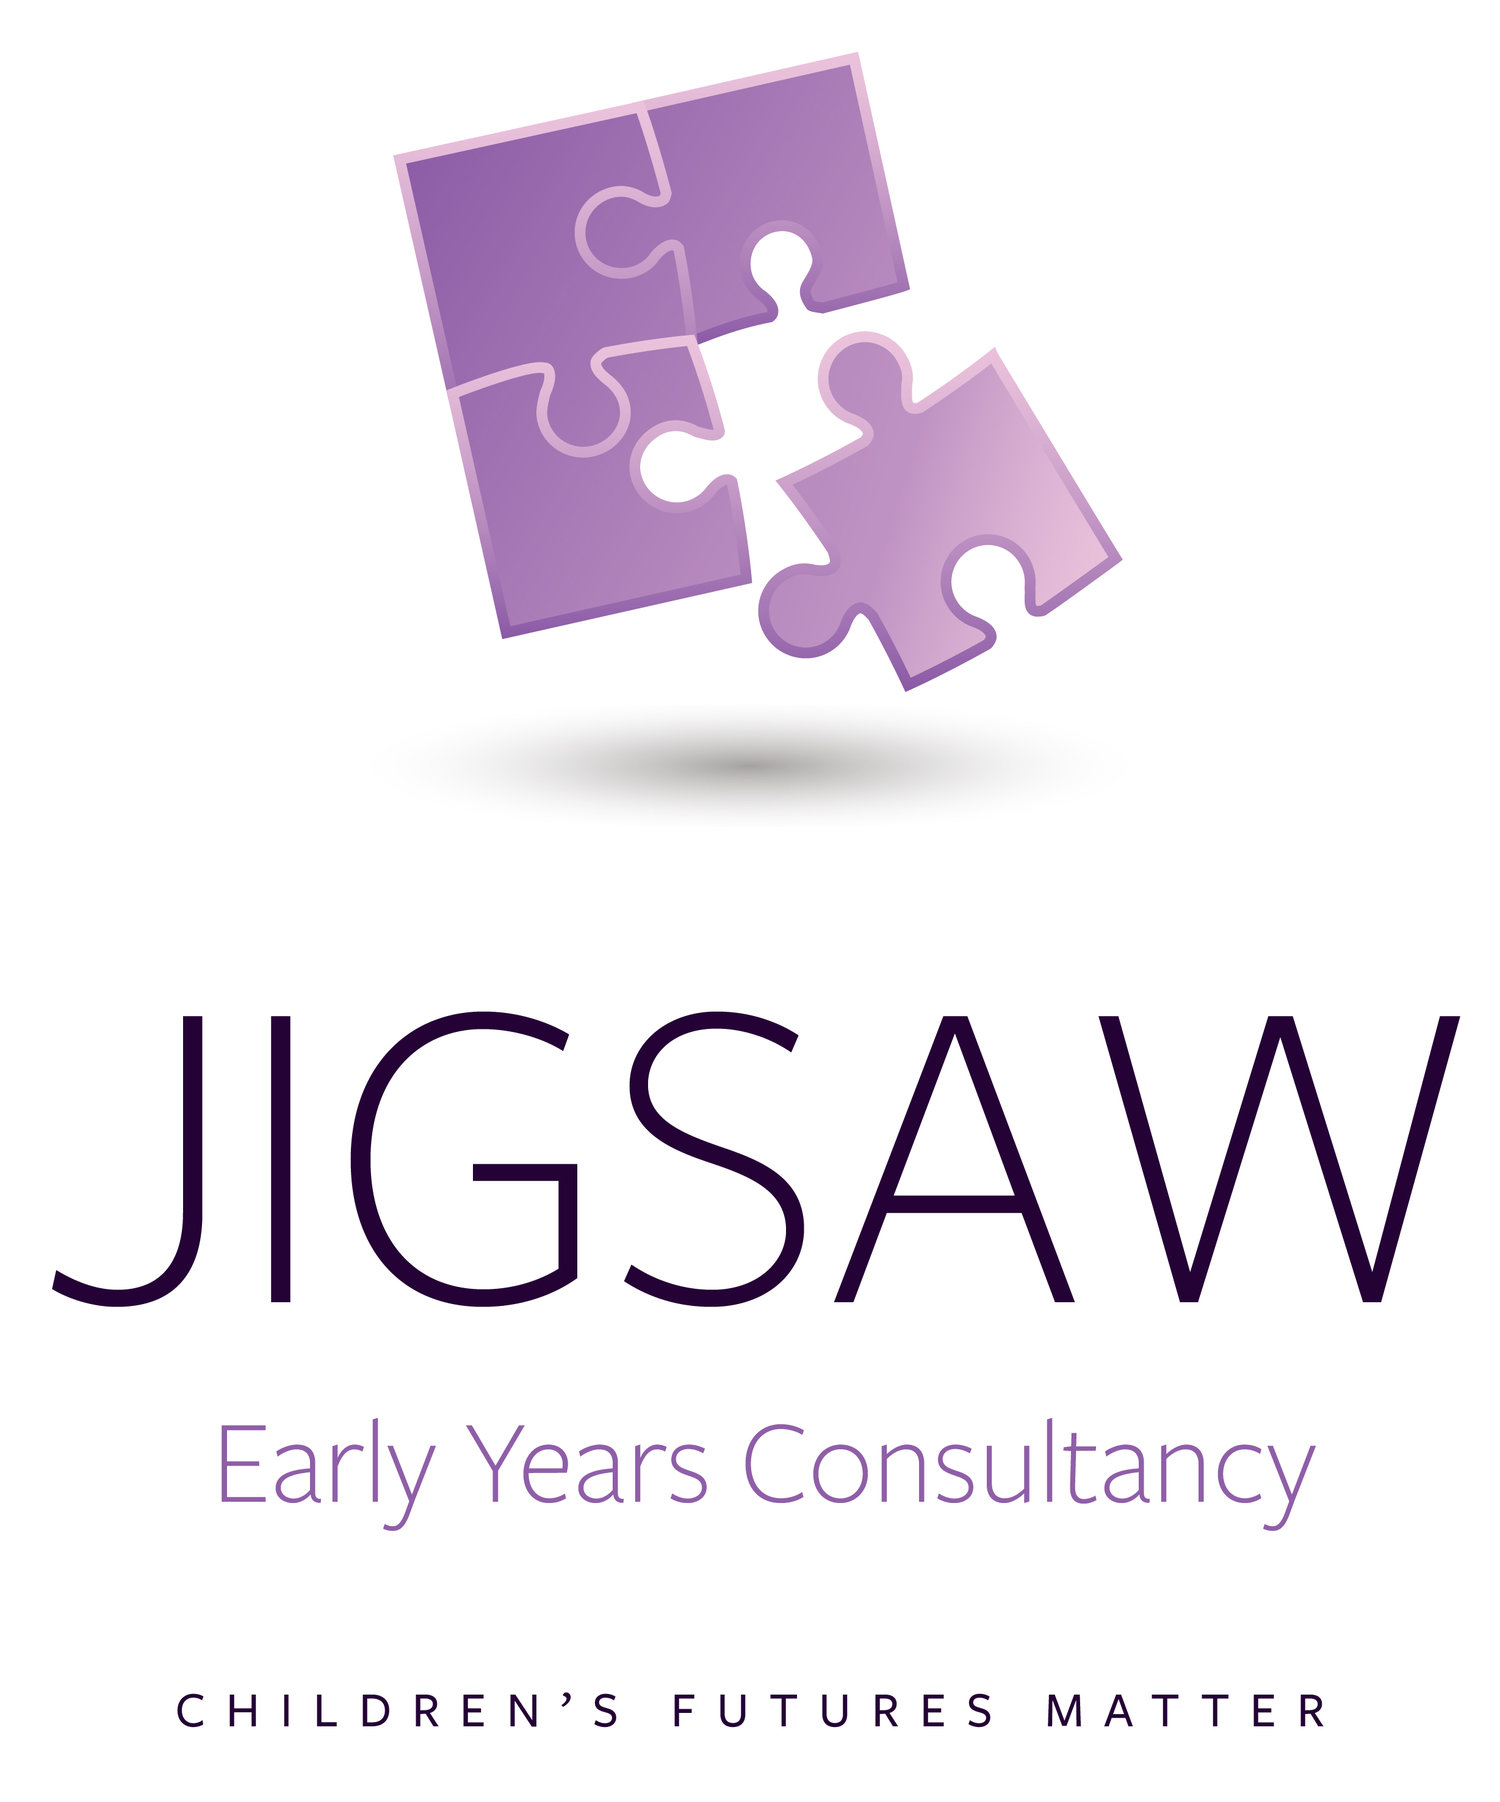 Jigsaw Early Years Consultancy